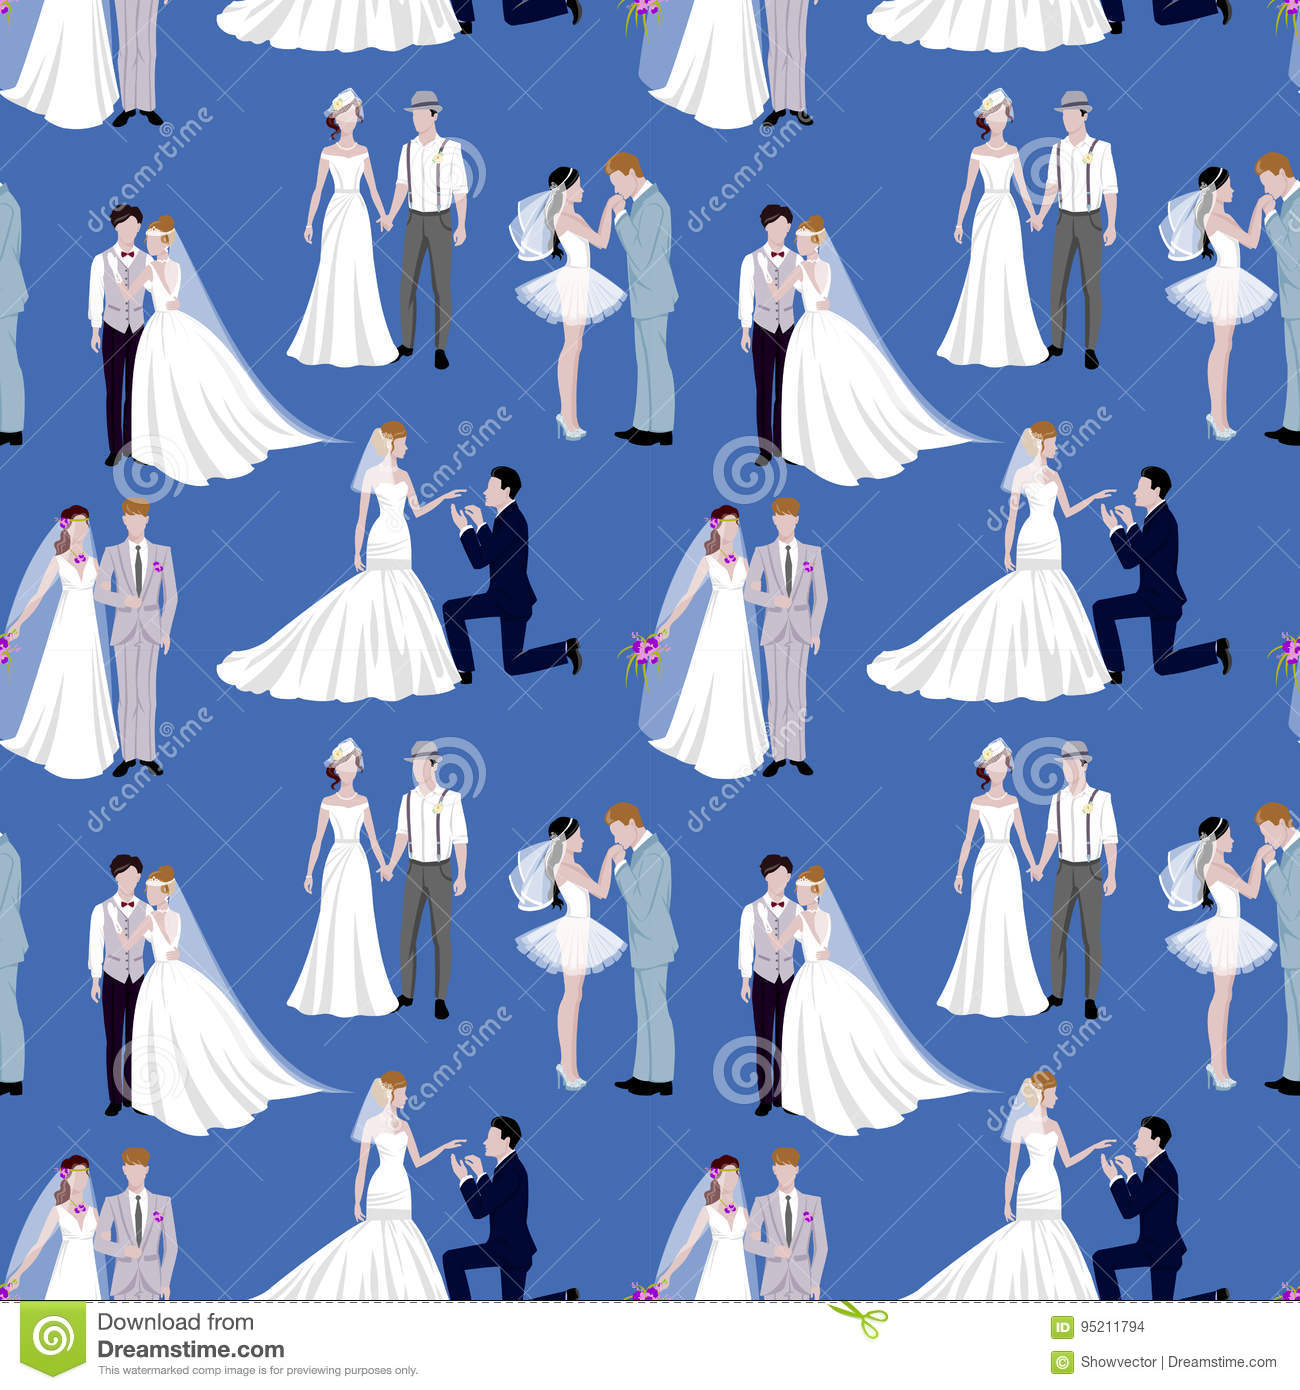 Wedding Ceremony Groom And Bride Couple People Silhouette Vector ...